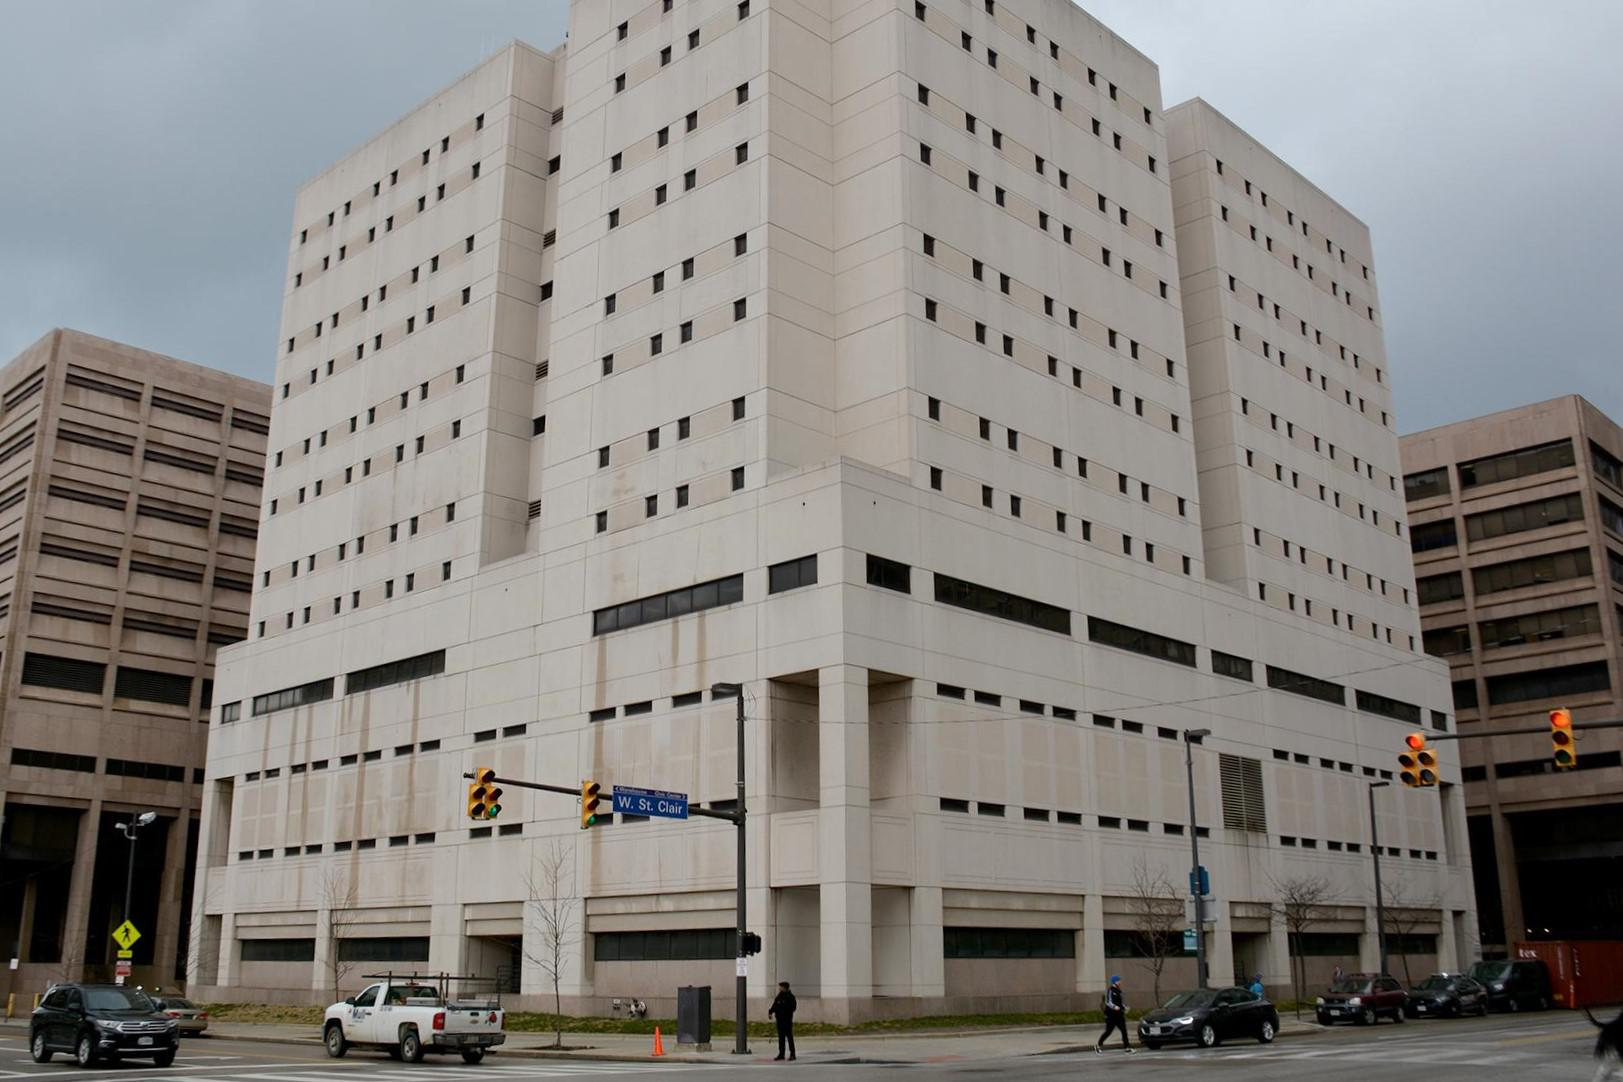 Ohio Ramping Up Jail Inspections Following Rash Of Inmate Deaths | WYSO